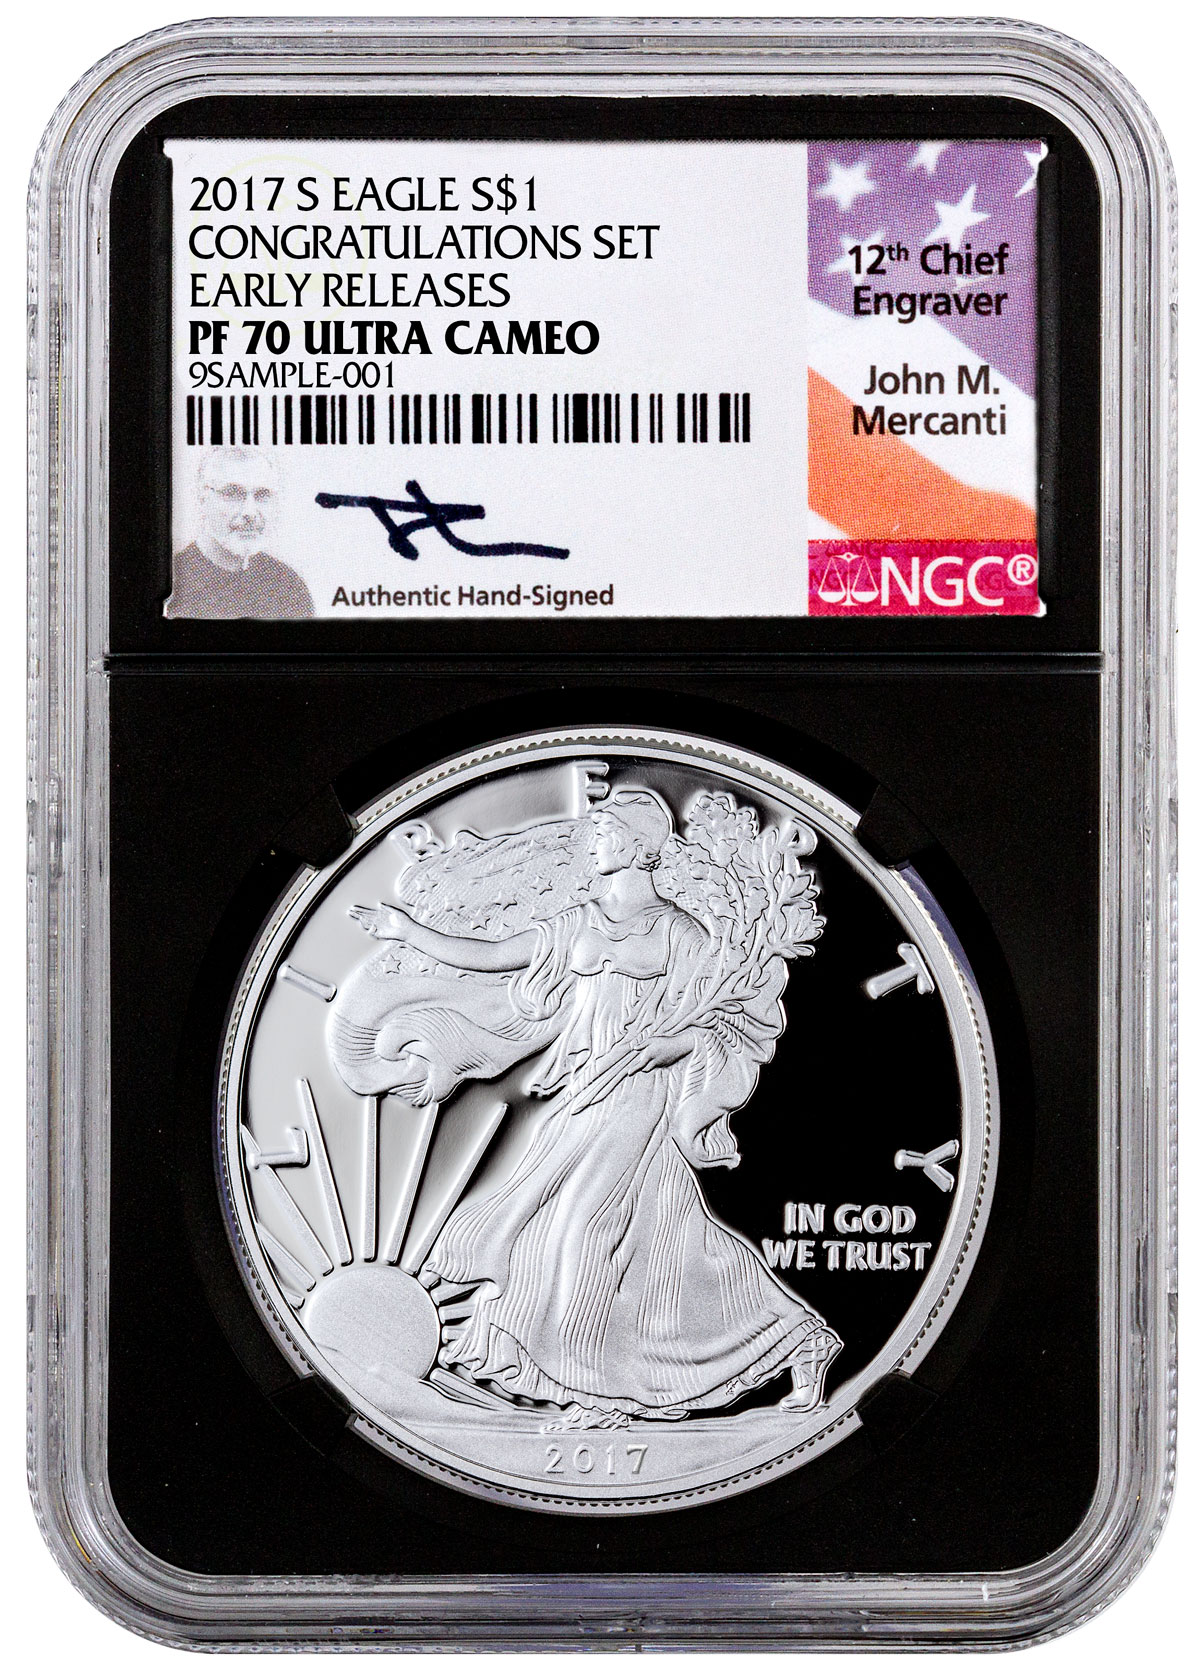 2017-S Proof Silver Eagle - Congratulations Set NGC PF70 UC ER (Black Core Holder - Mercanti Signed Label)